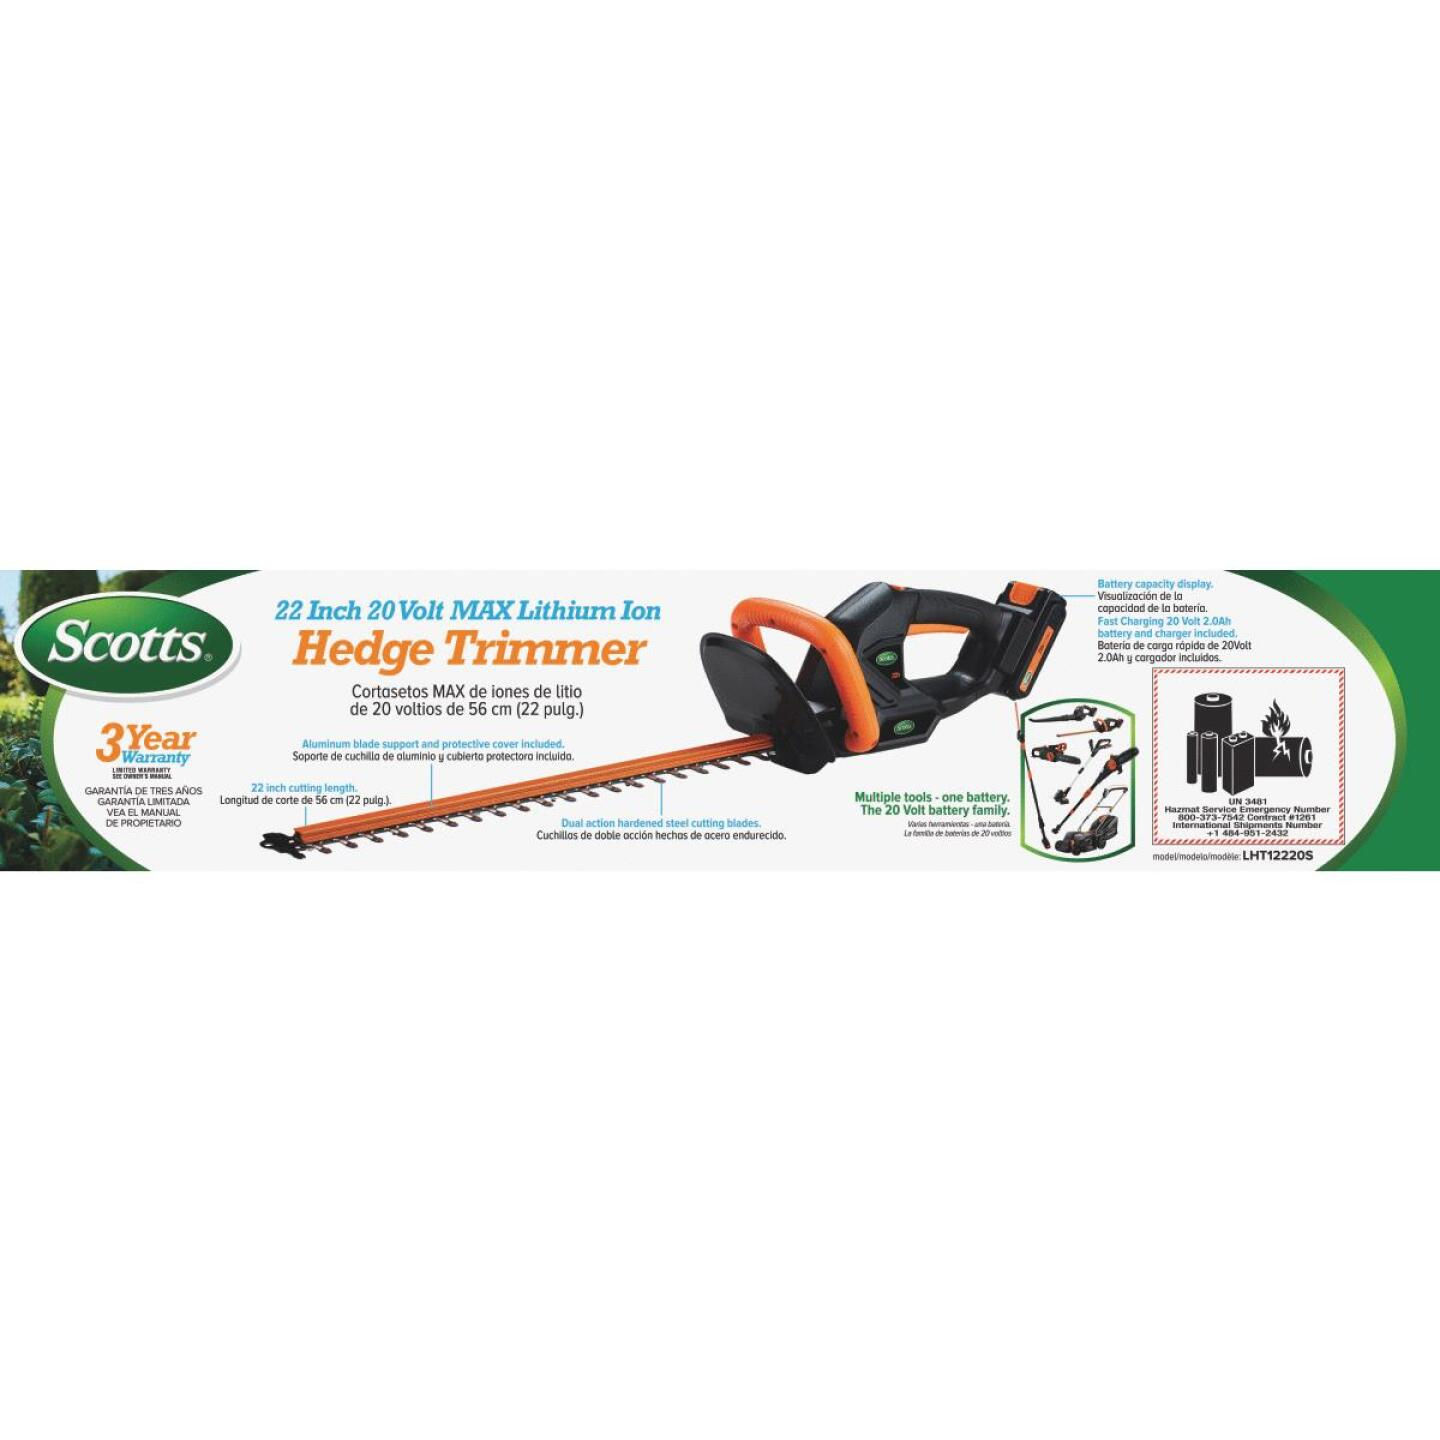 Scotts 22 In. 20V Lithium Ion Cordless Hedge Trimmer Image 2